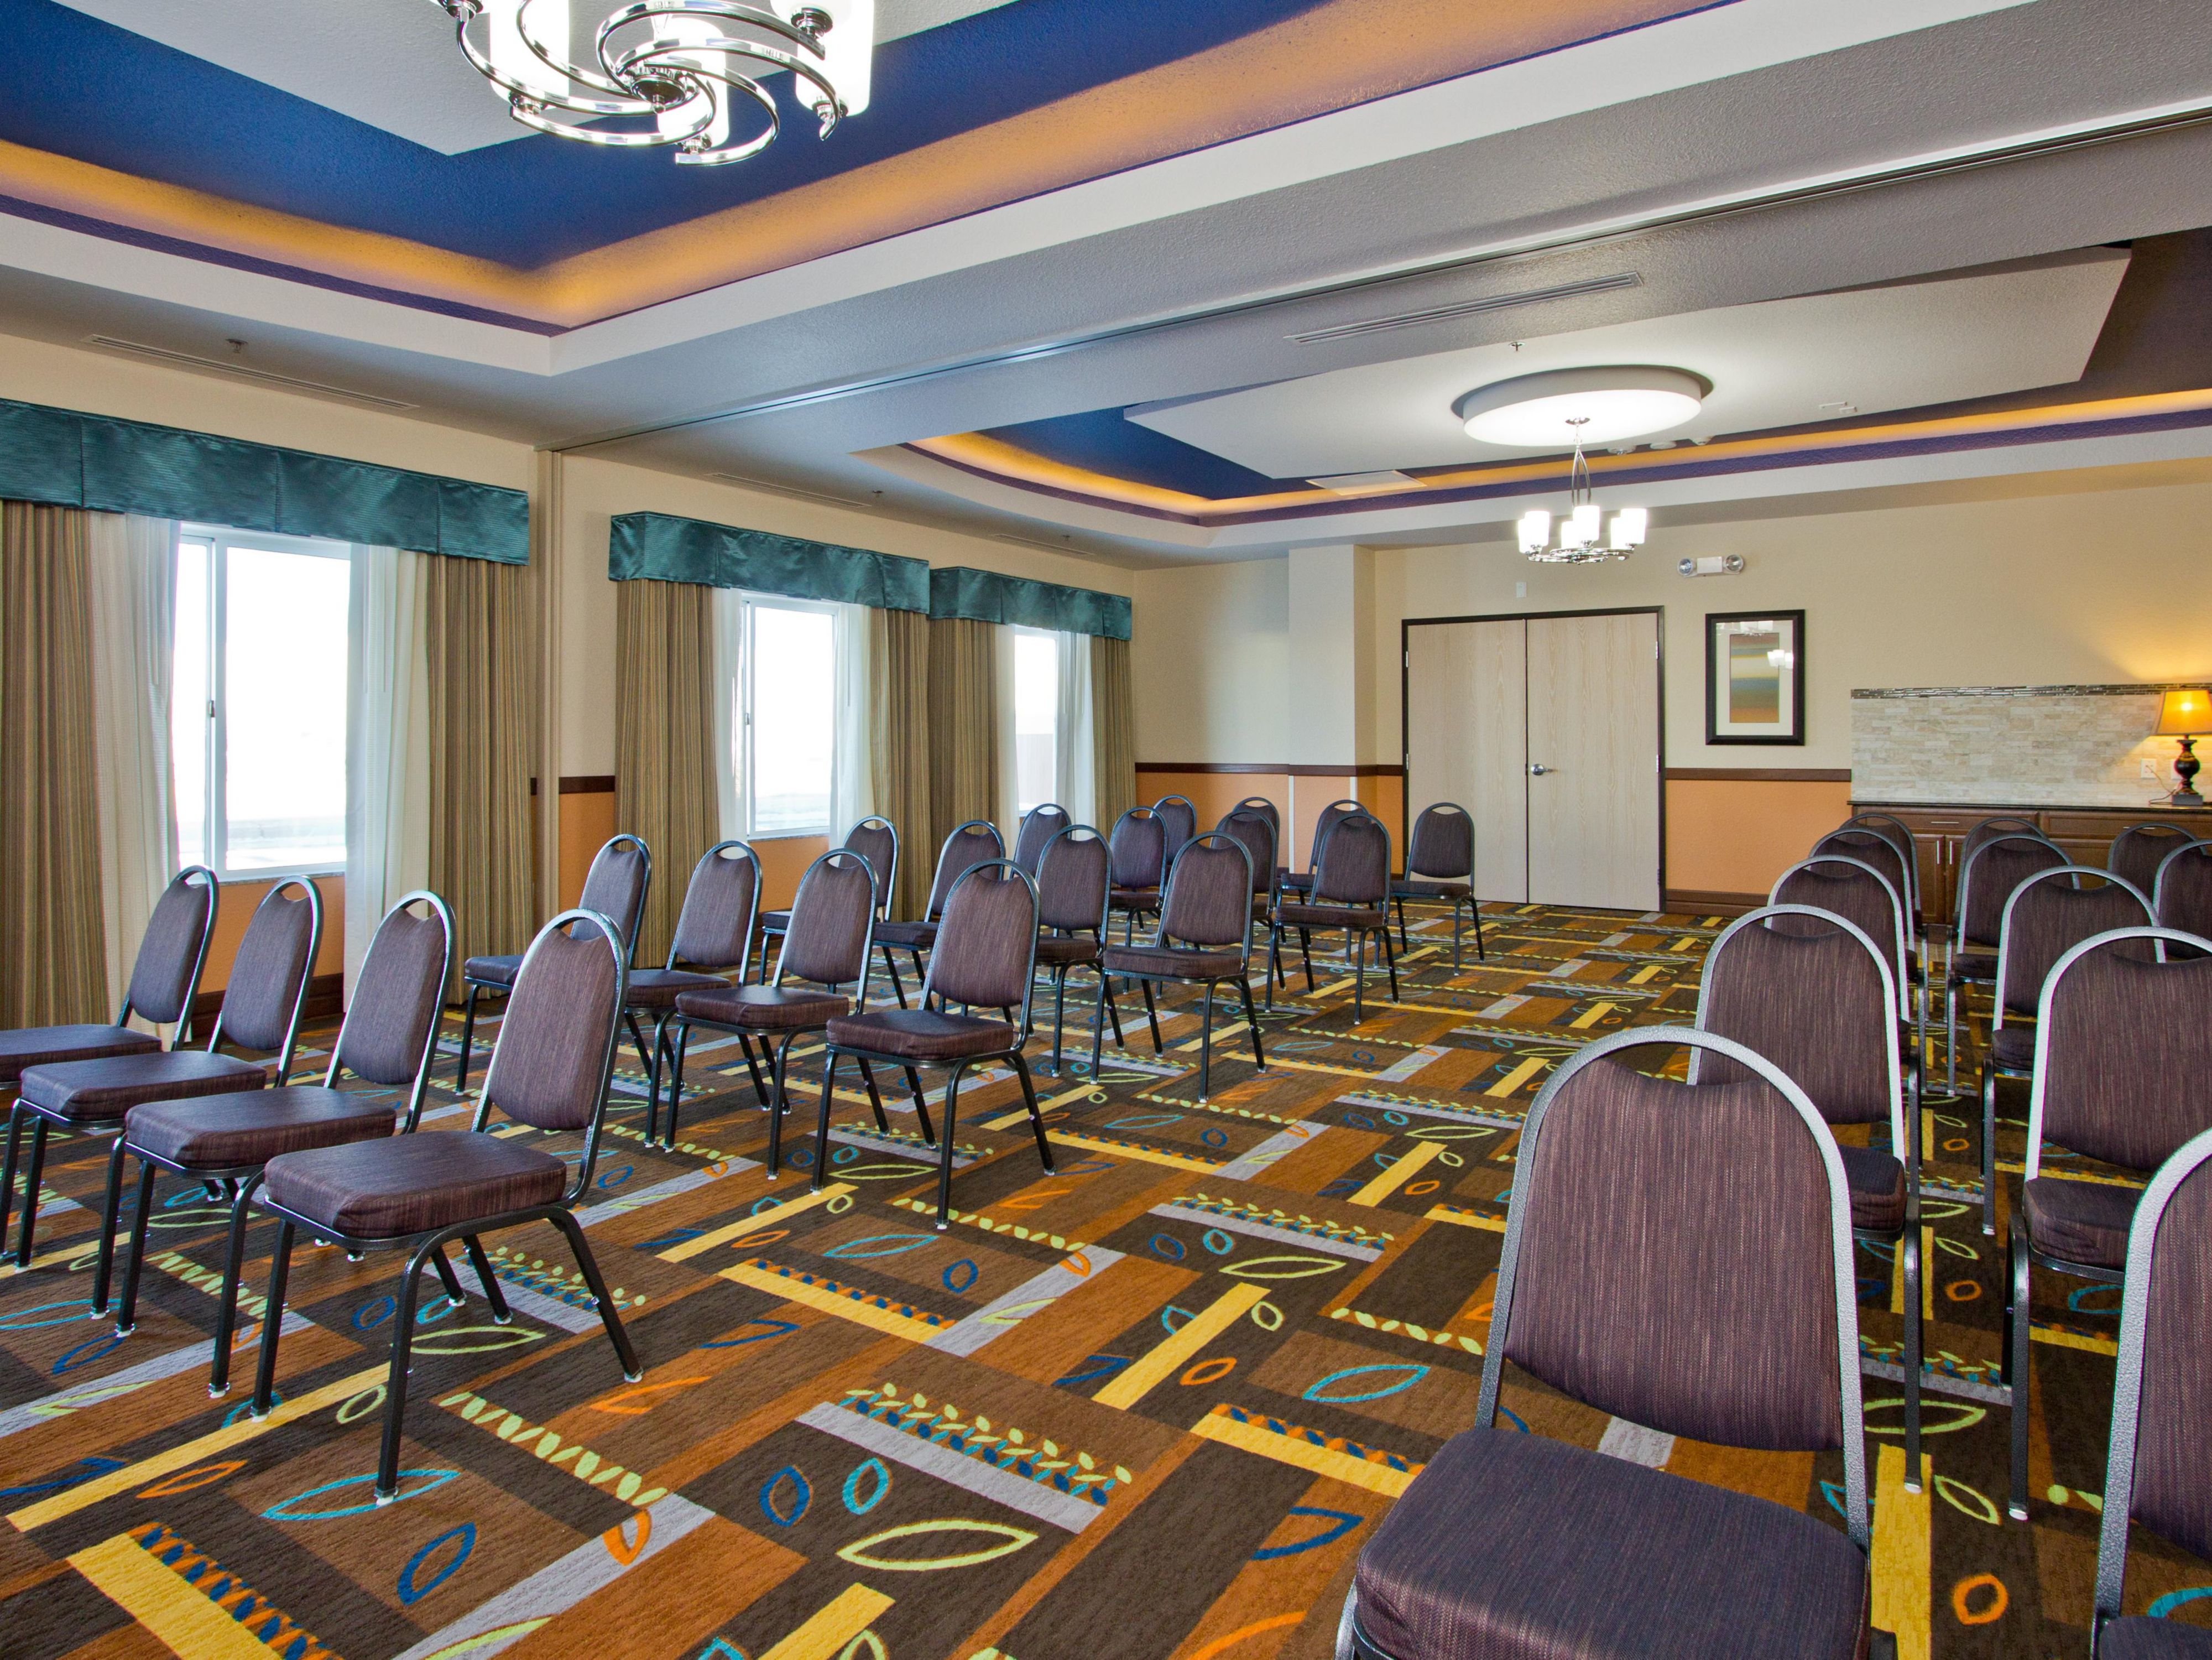 Holiday Inn Express and Suites Conference Room Meeting Space